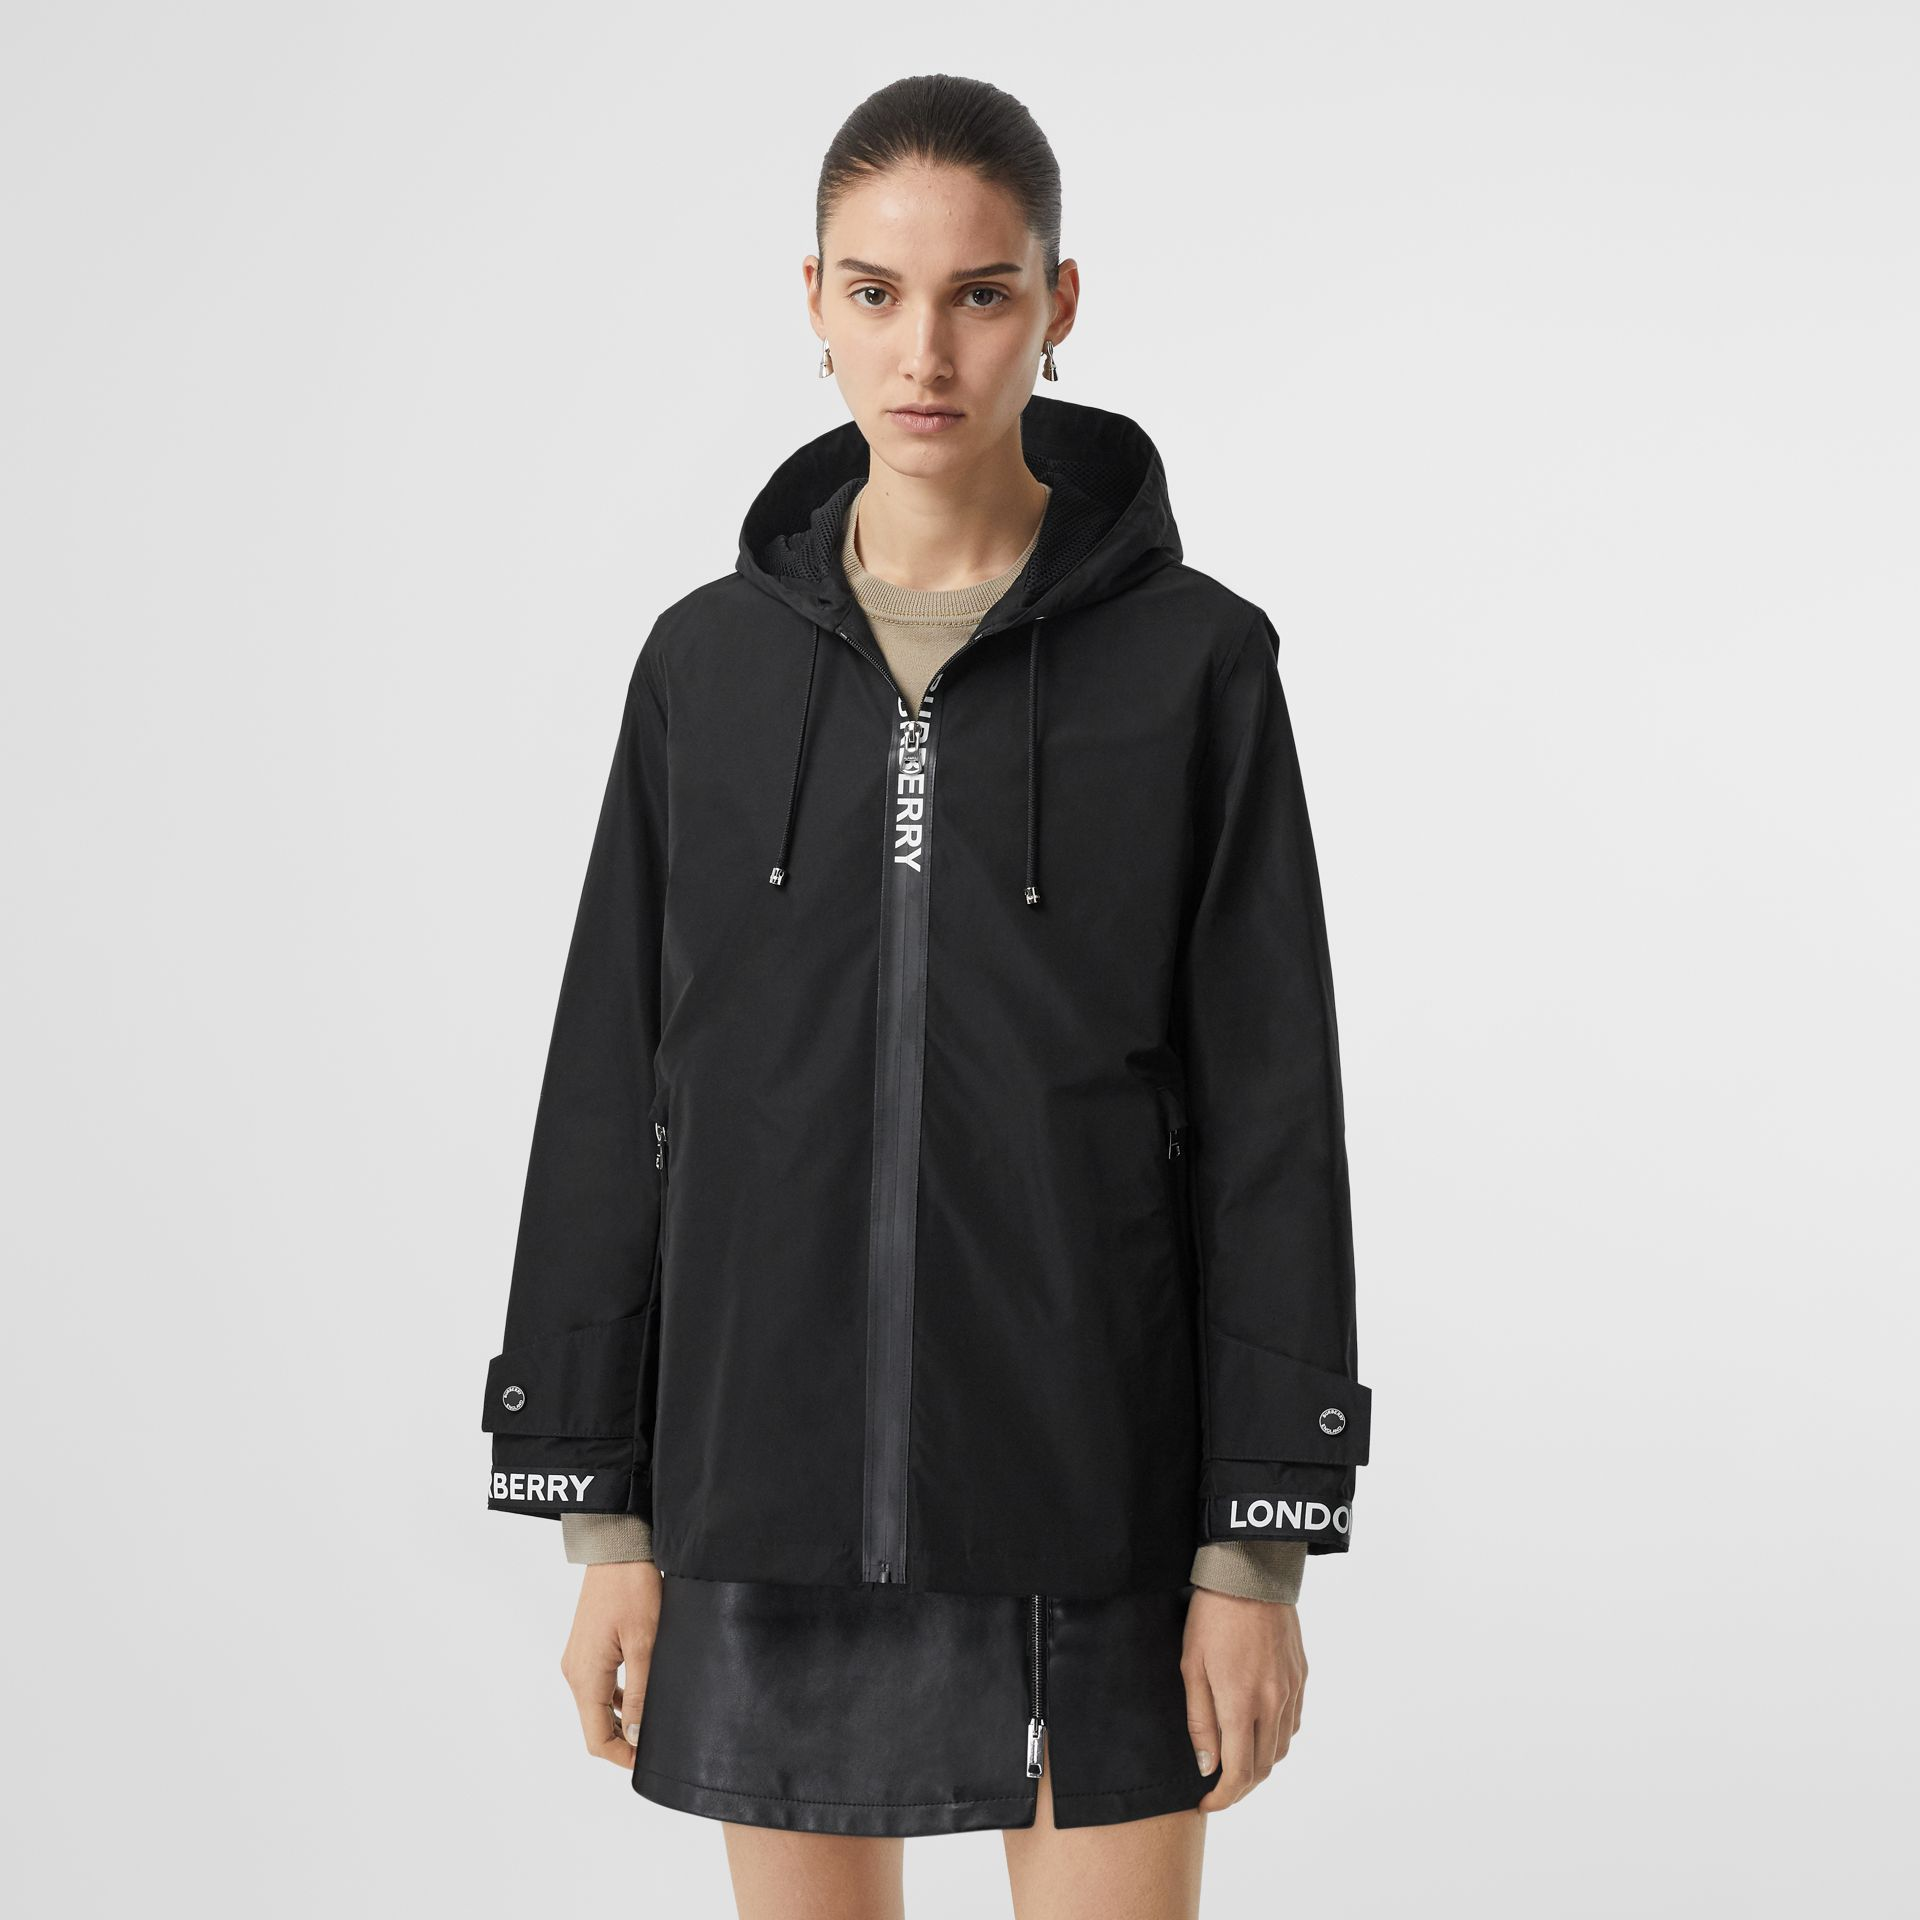 Logo Detail Shape-memory Taffeta Hooded Jacket in Black - Women | Burberry - gallery image 4